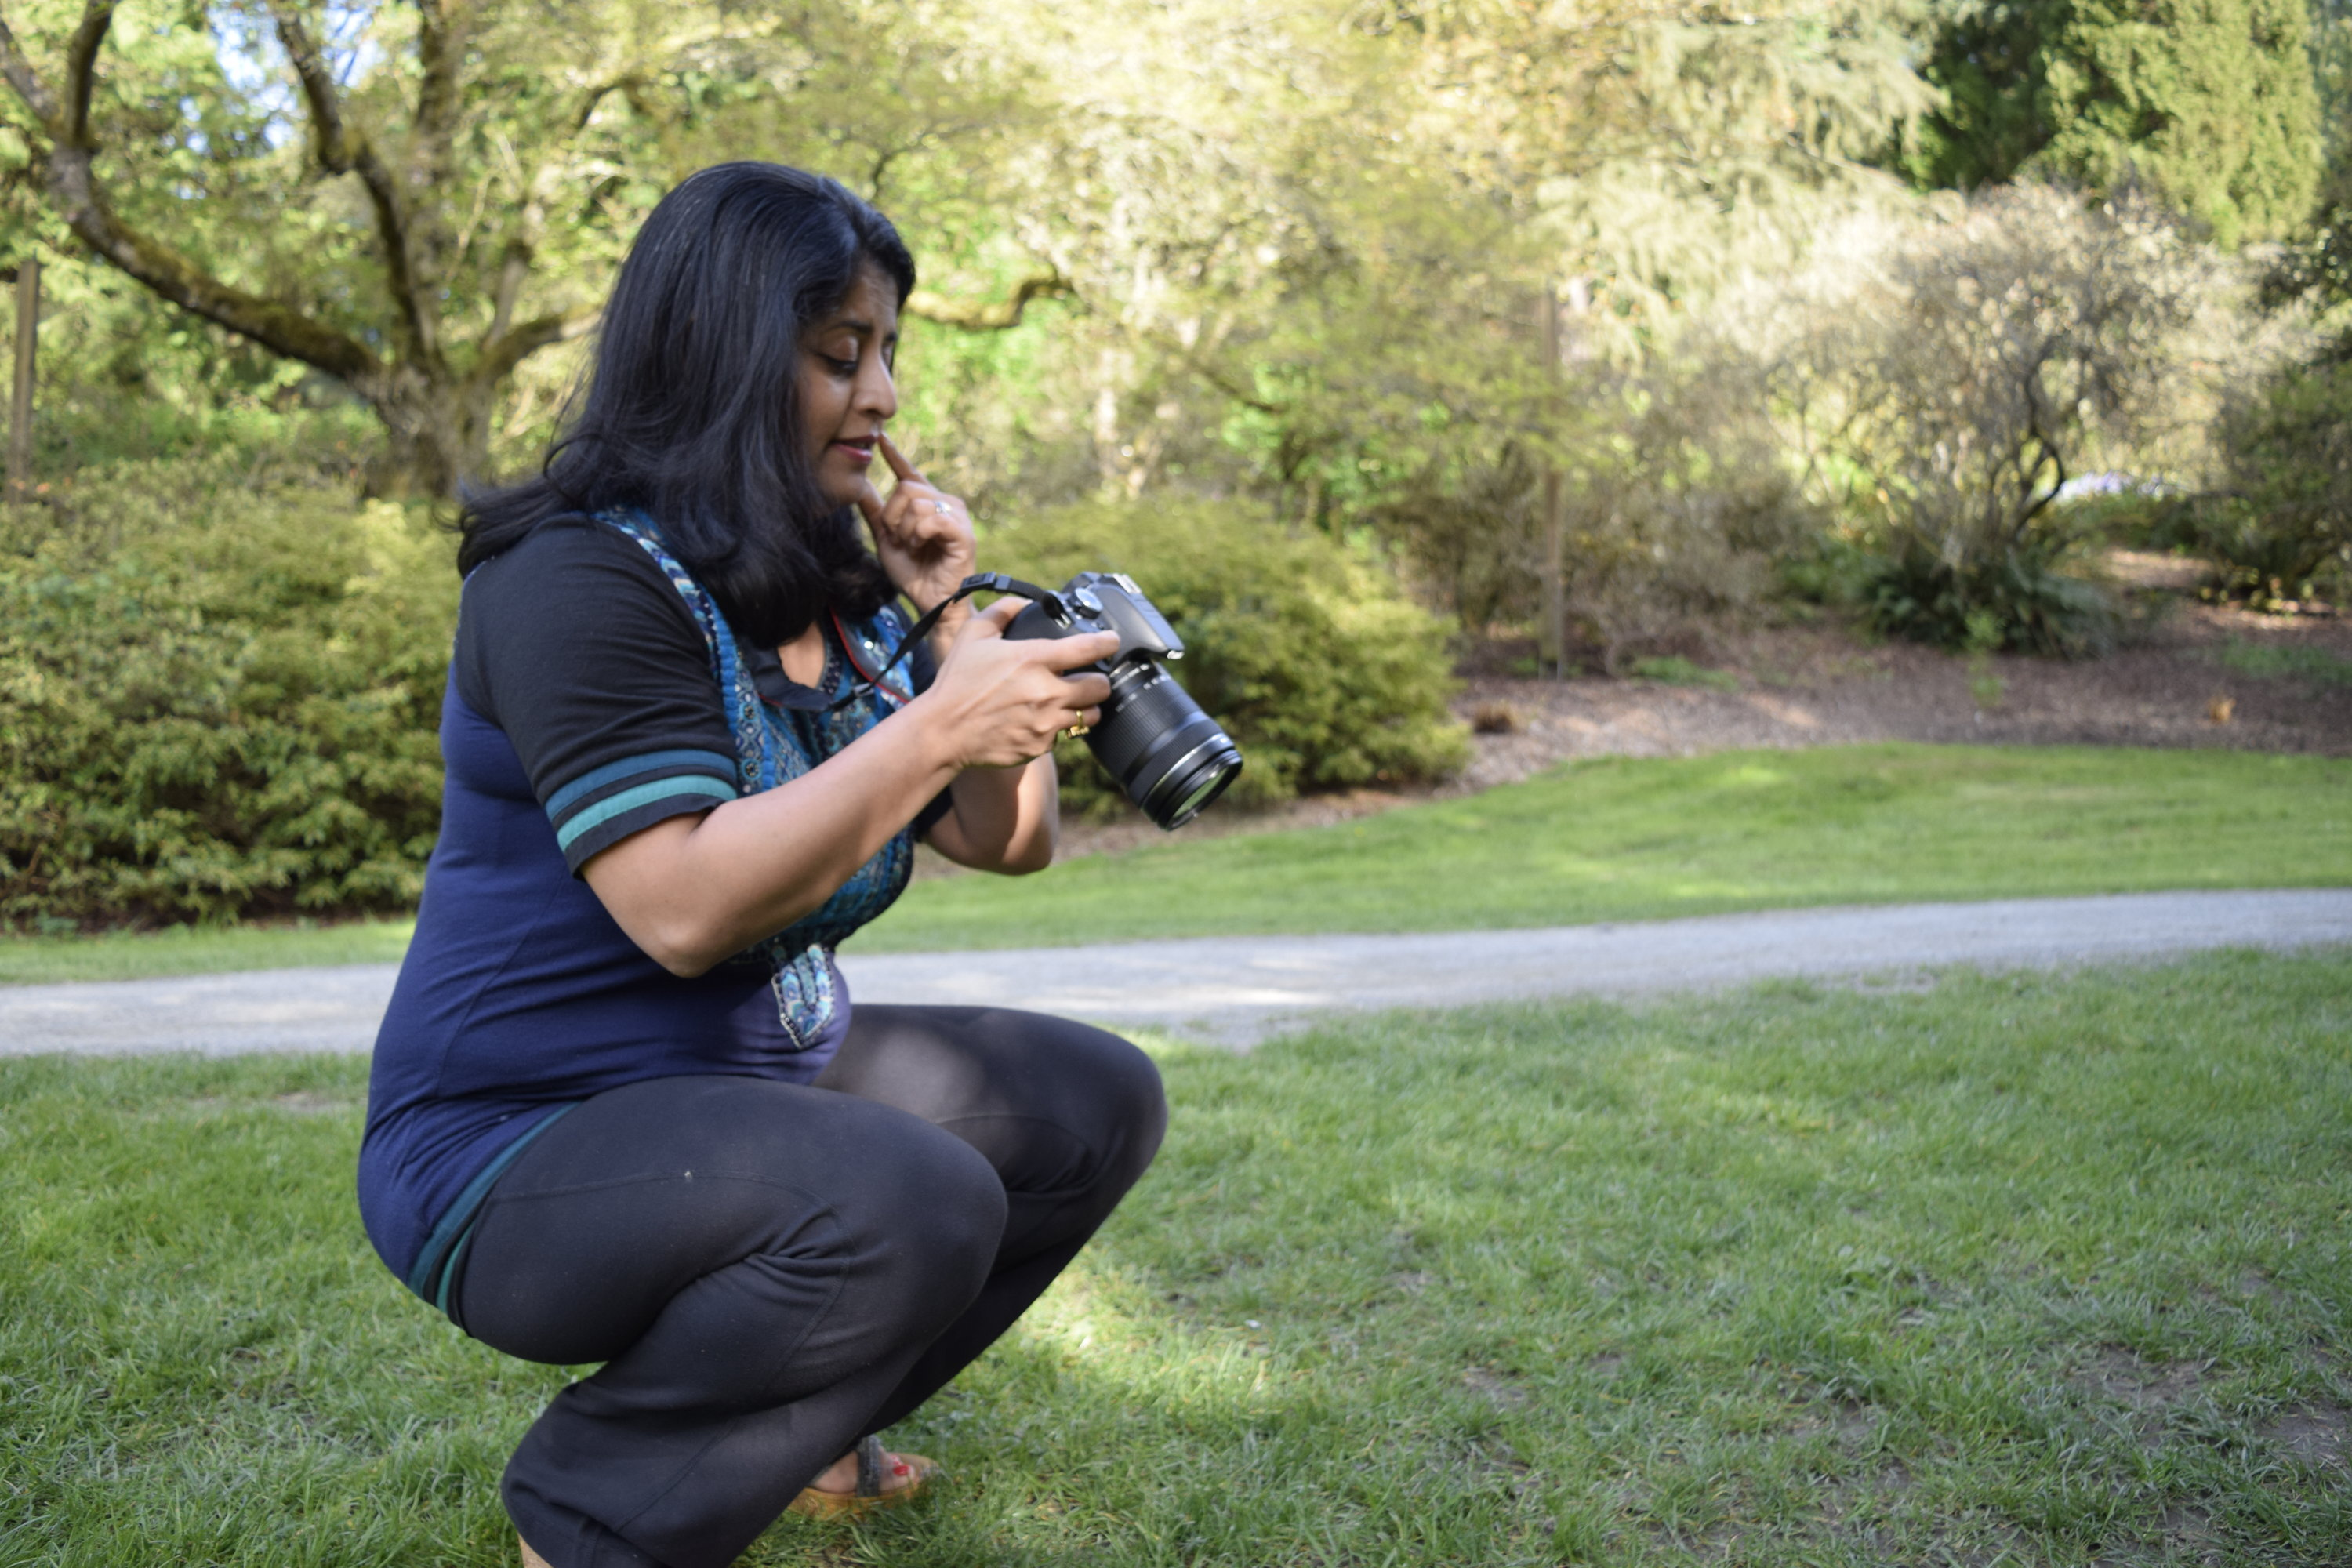 Sudeshna Sen looks at photos she has taken in the Arboretum in Seattle, Wash. for site development on a future video project. (Photo by Rayna Stackhouse)